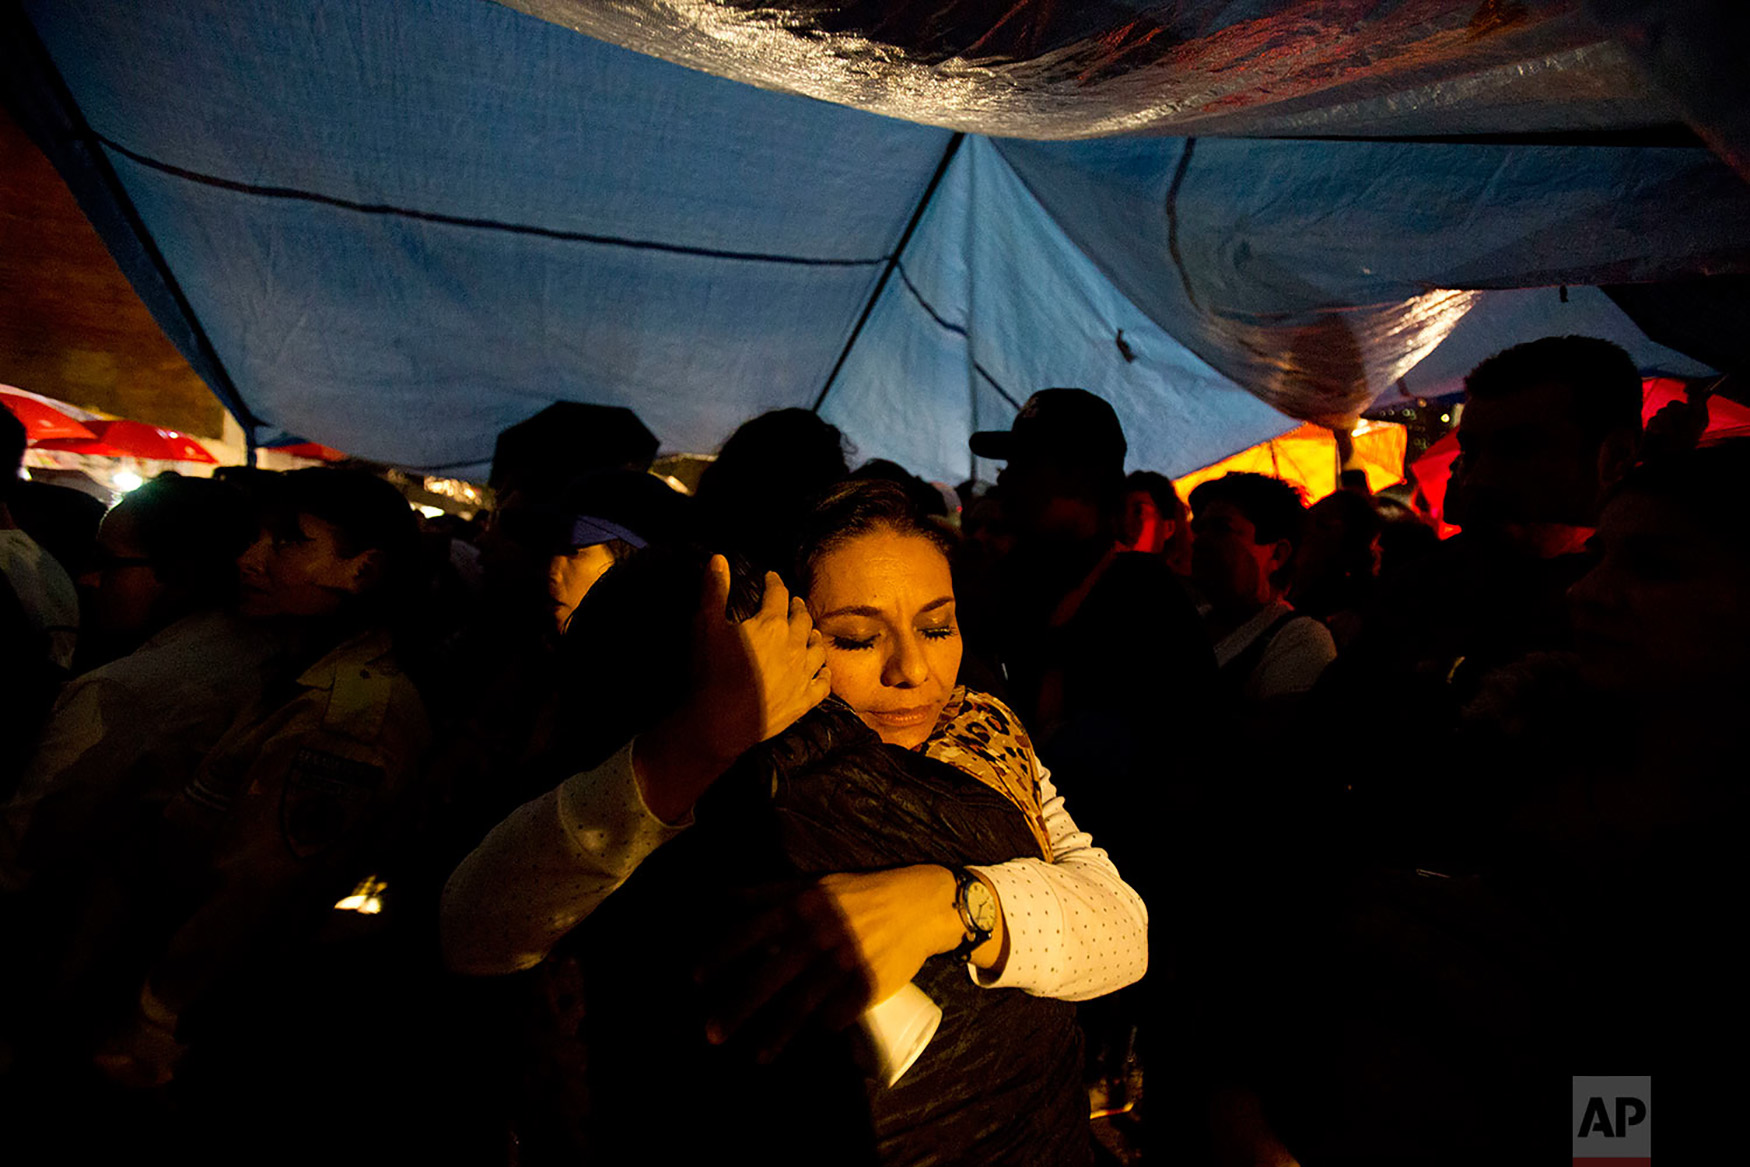 Victims' family members hug during an evening memorial ceremony at Alvaro Obregon 286, where 49 died when their office building collapsed in last year's 7.1 magnitude earthquake, in Mexico City, Sept. 19, 2018. Across the city, memorials were held at sites where hundreds perished in the quake one year ago. (AP Photo/Rebecca Blackwell)